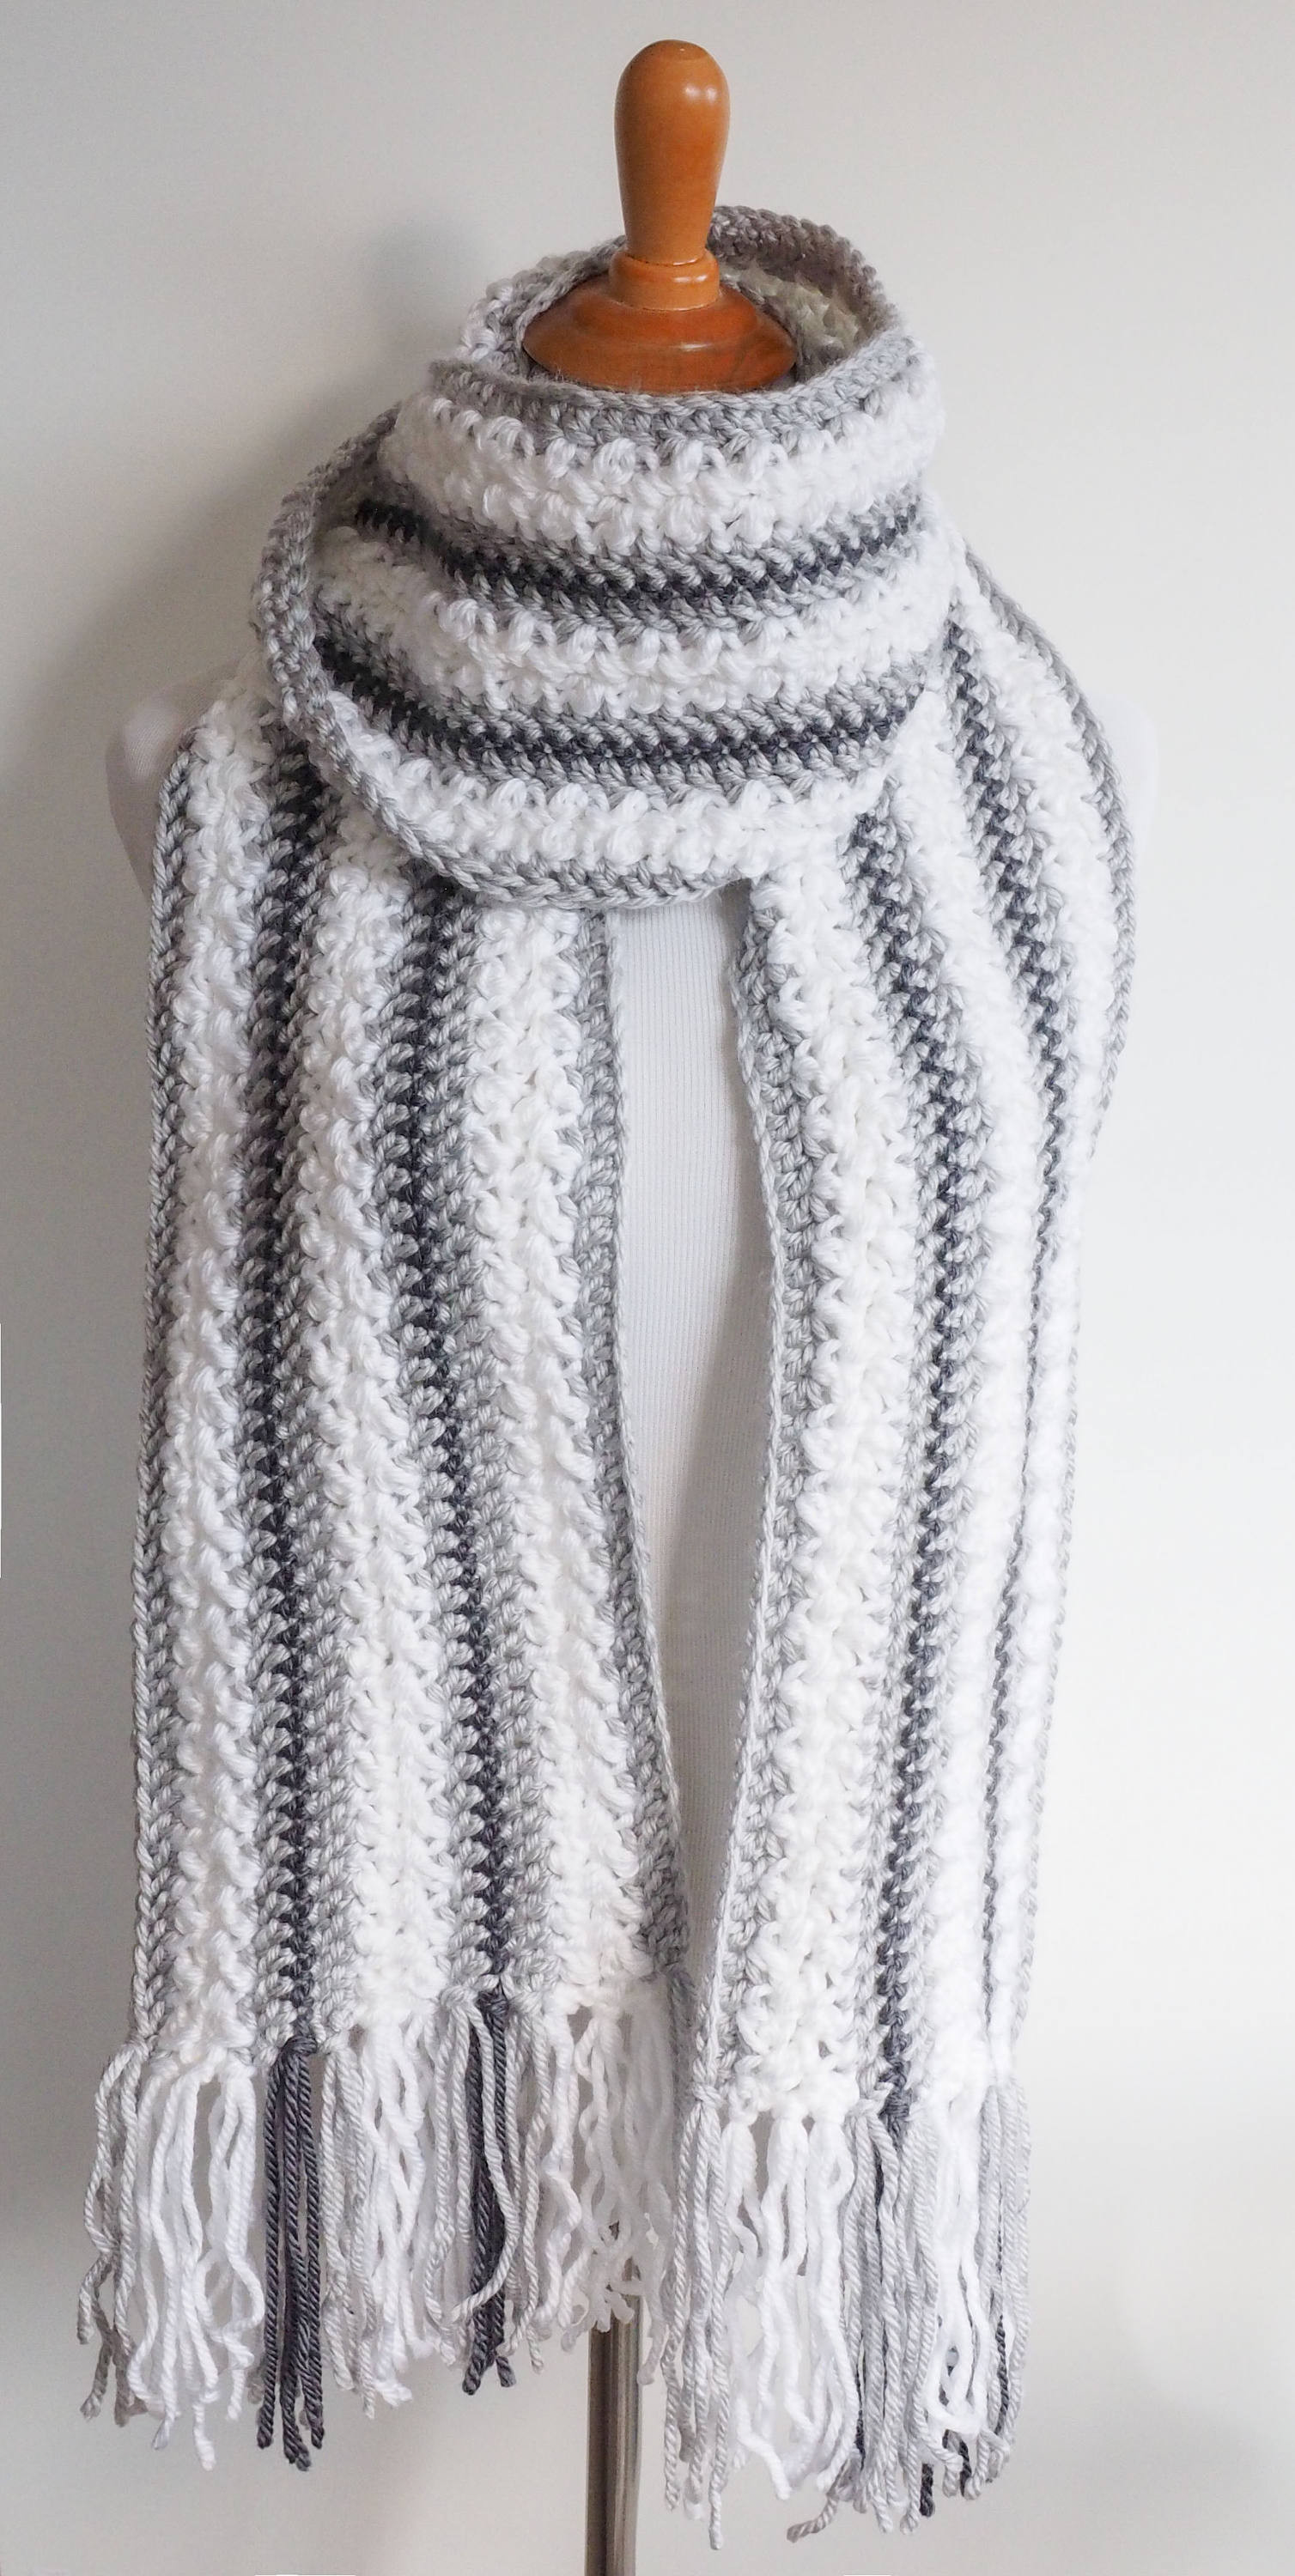 Chunky Yarn Crochet Patterns Inspirational Chunky Yarn Scarf Crochet Pattern Striped Scarf Pattern Of Amazing 46 Photos Chunky Yarn Crochet Patterns